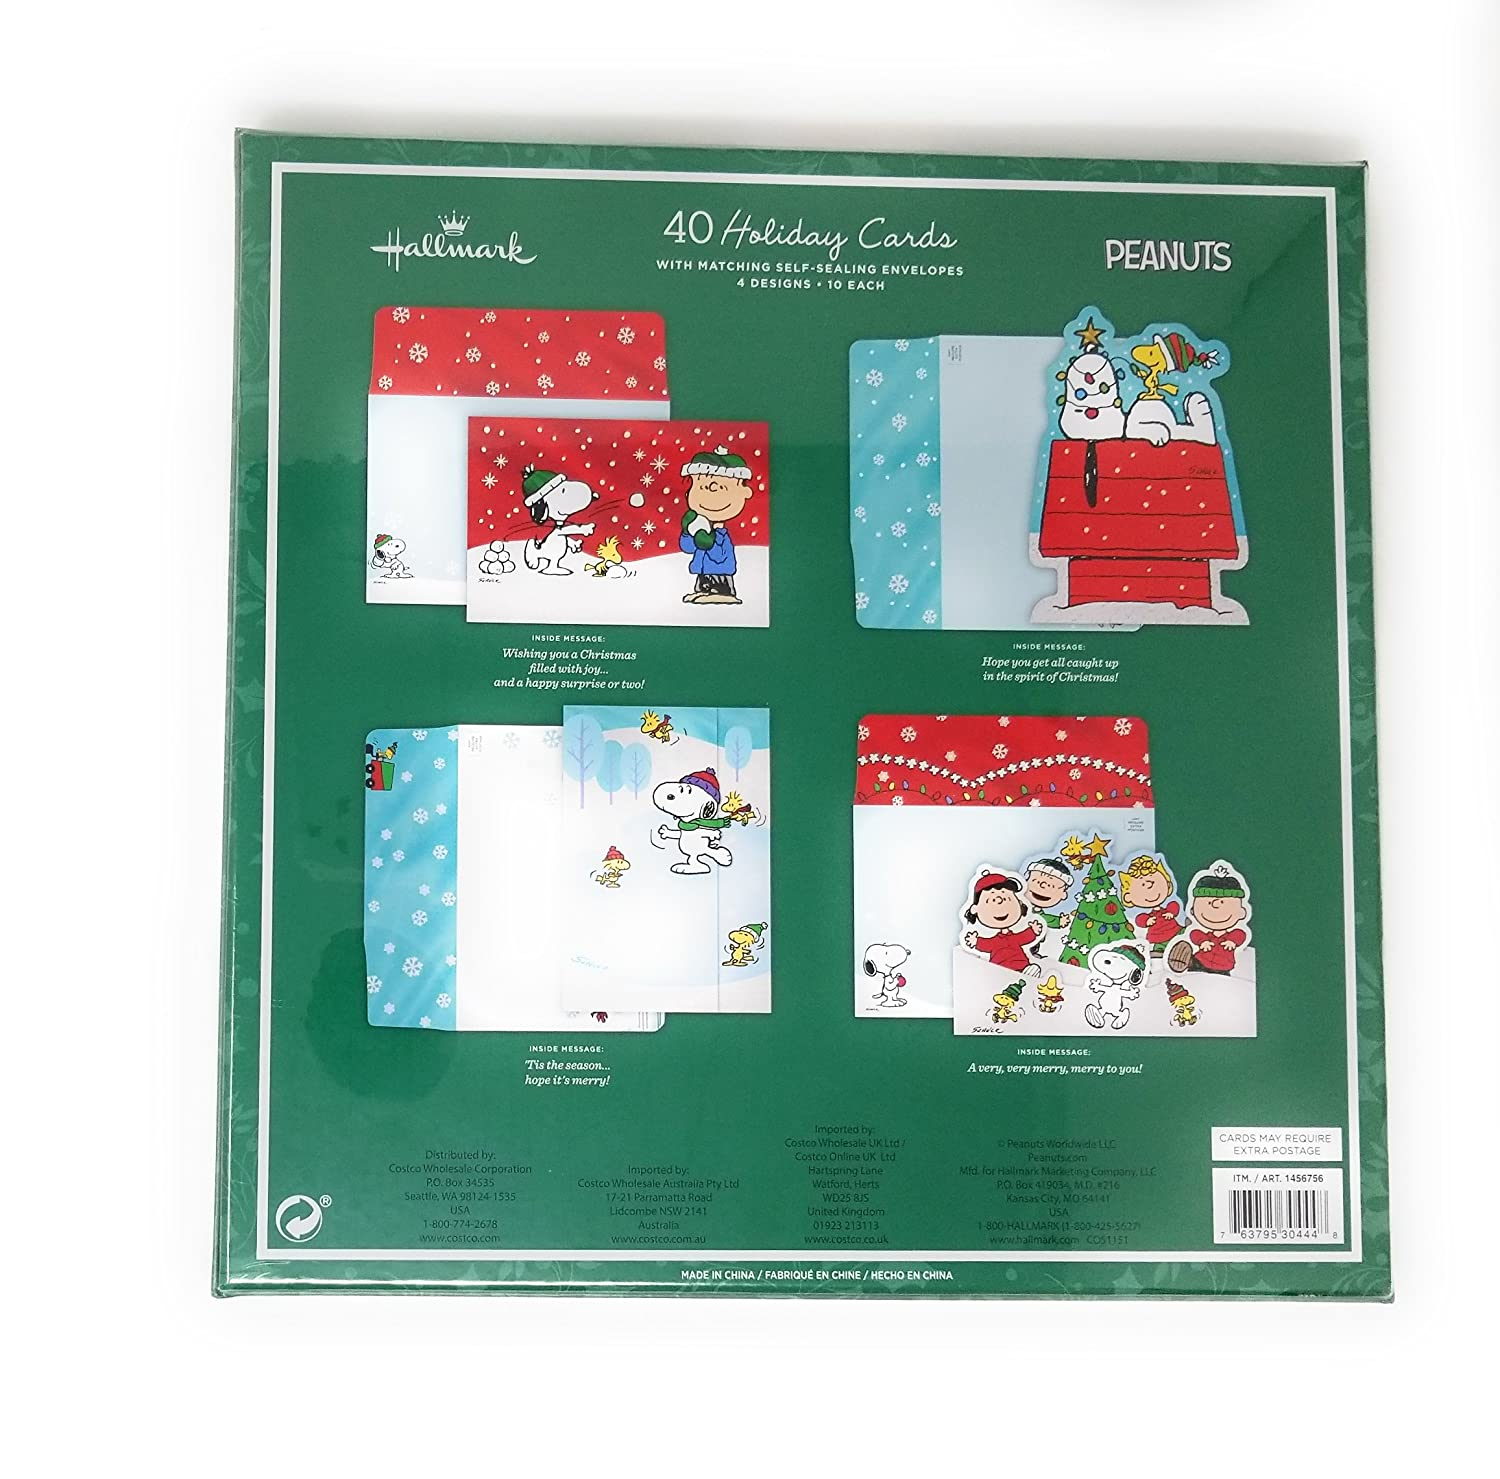 costco photo holiday cards sample www